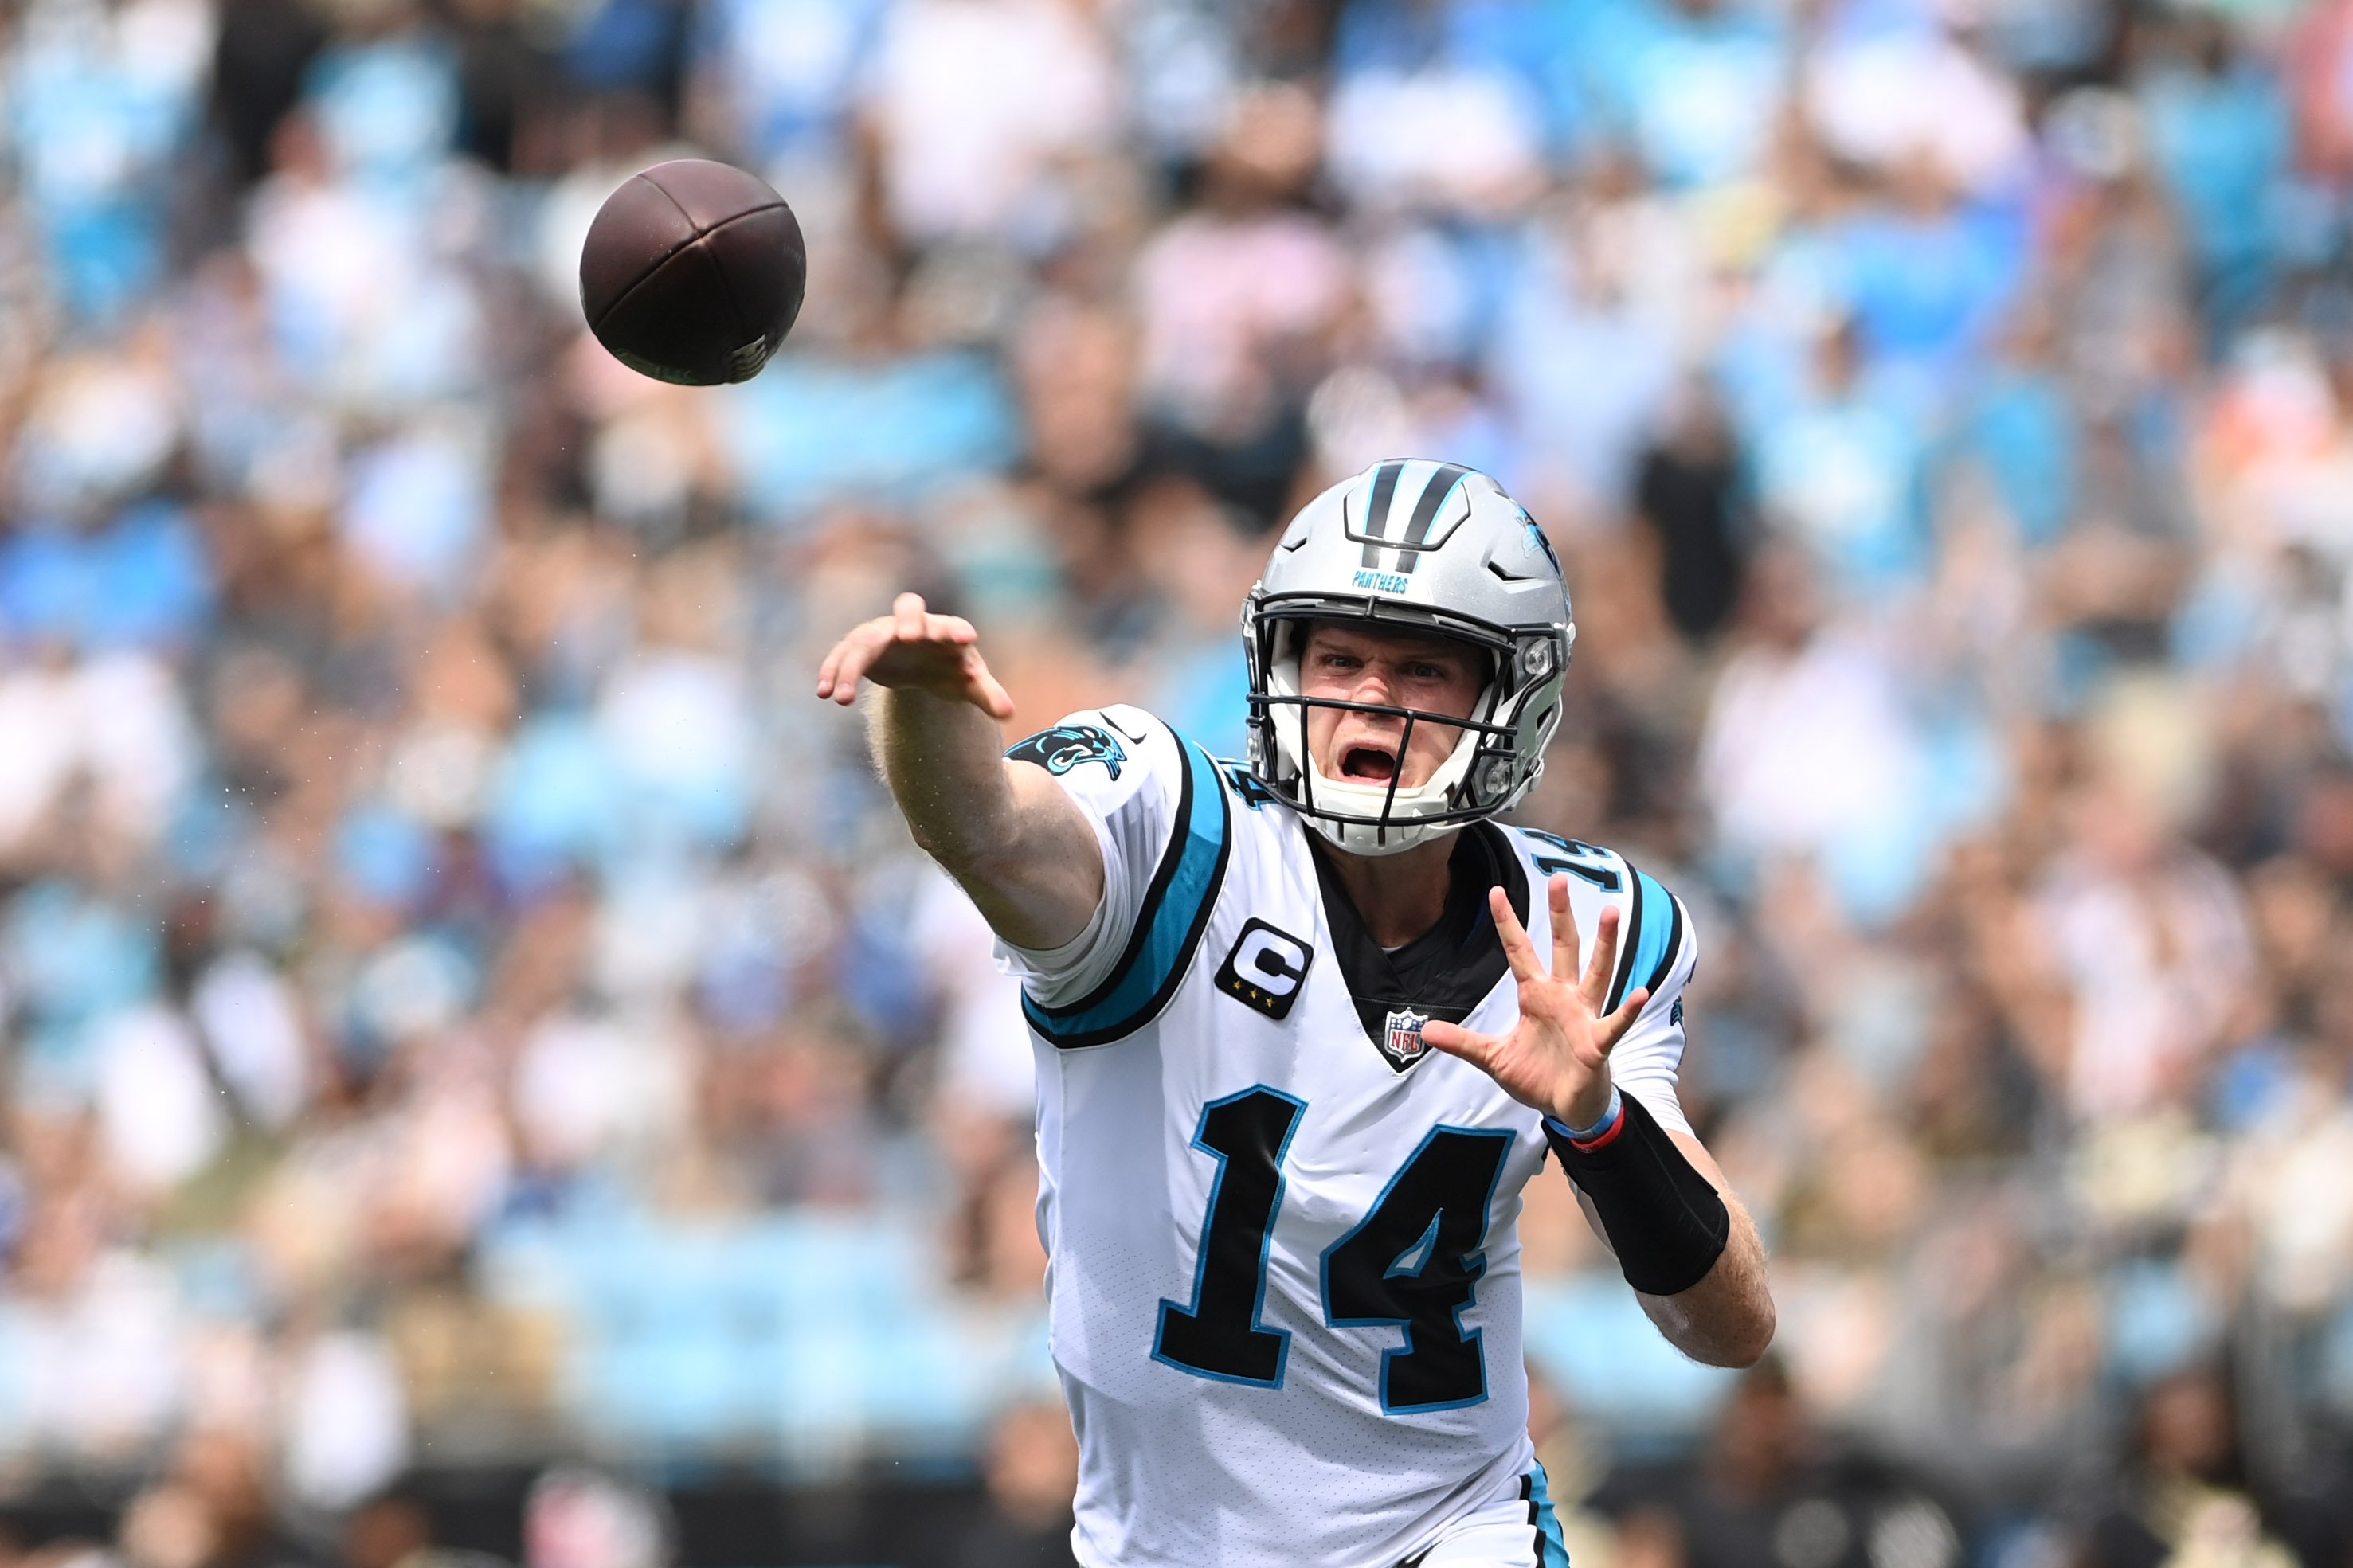 Nfl Office Pool Picks Week 3 With Expert Analysis And Ats Predictions